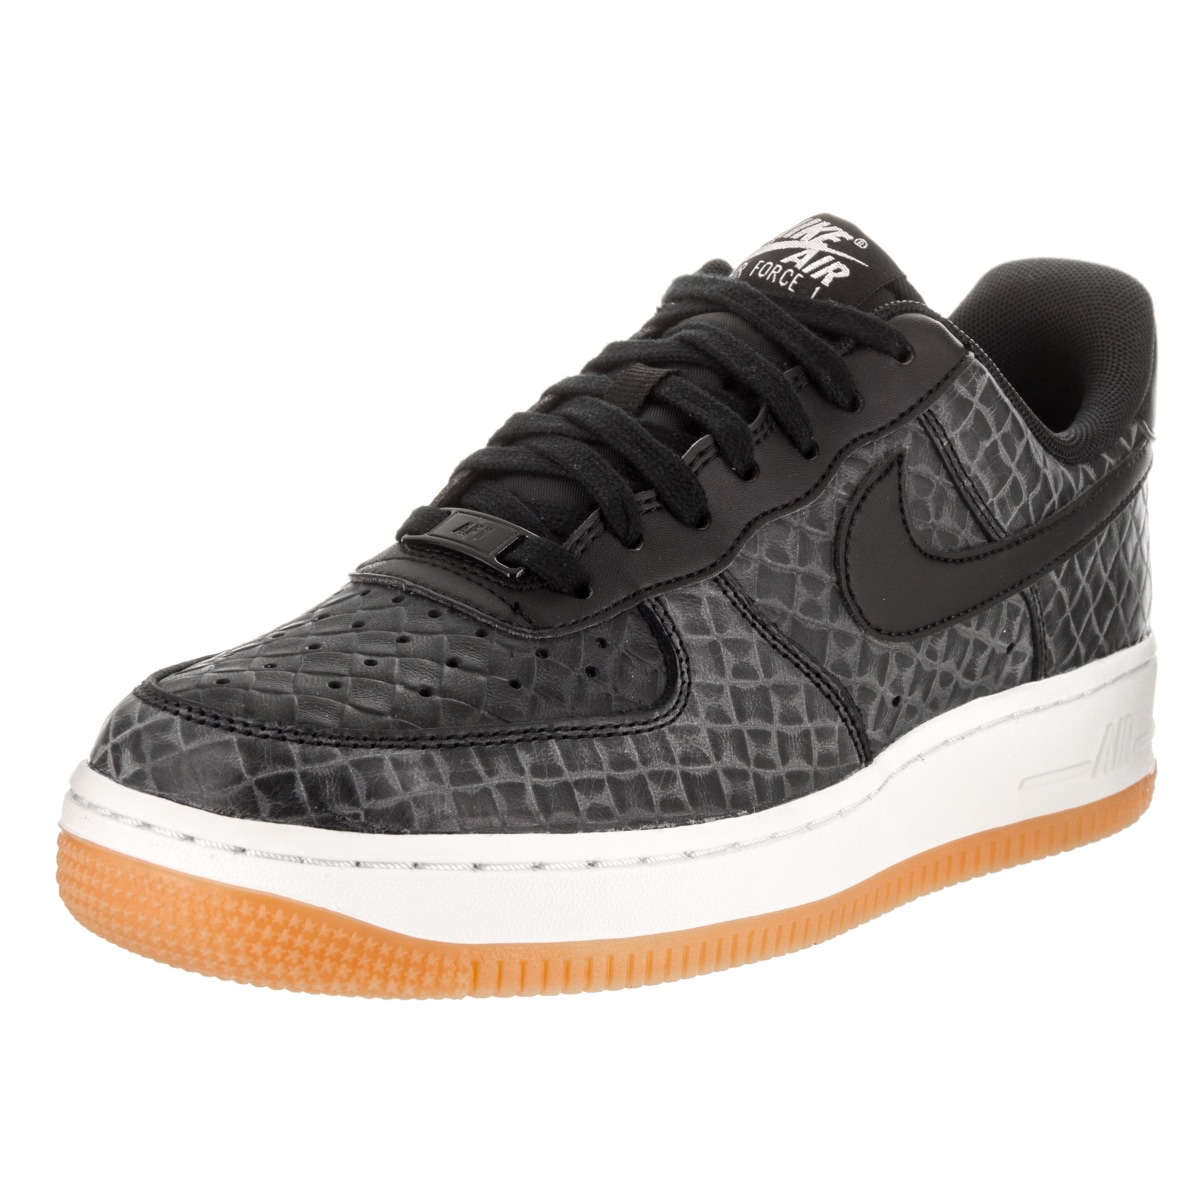 Nike Women's Air Force 1 '07 Prm Black Synthetic Leather ...